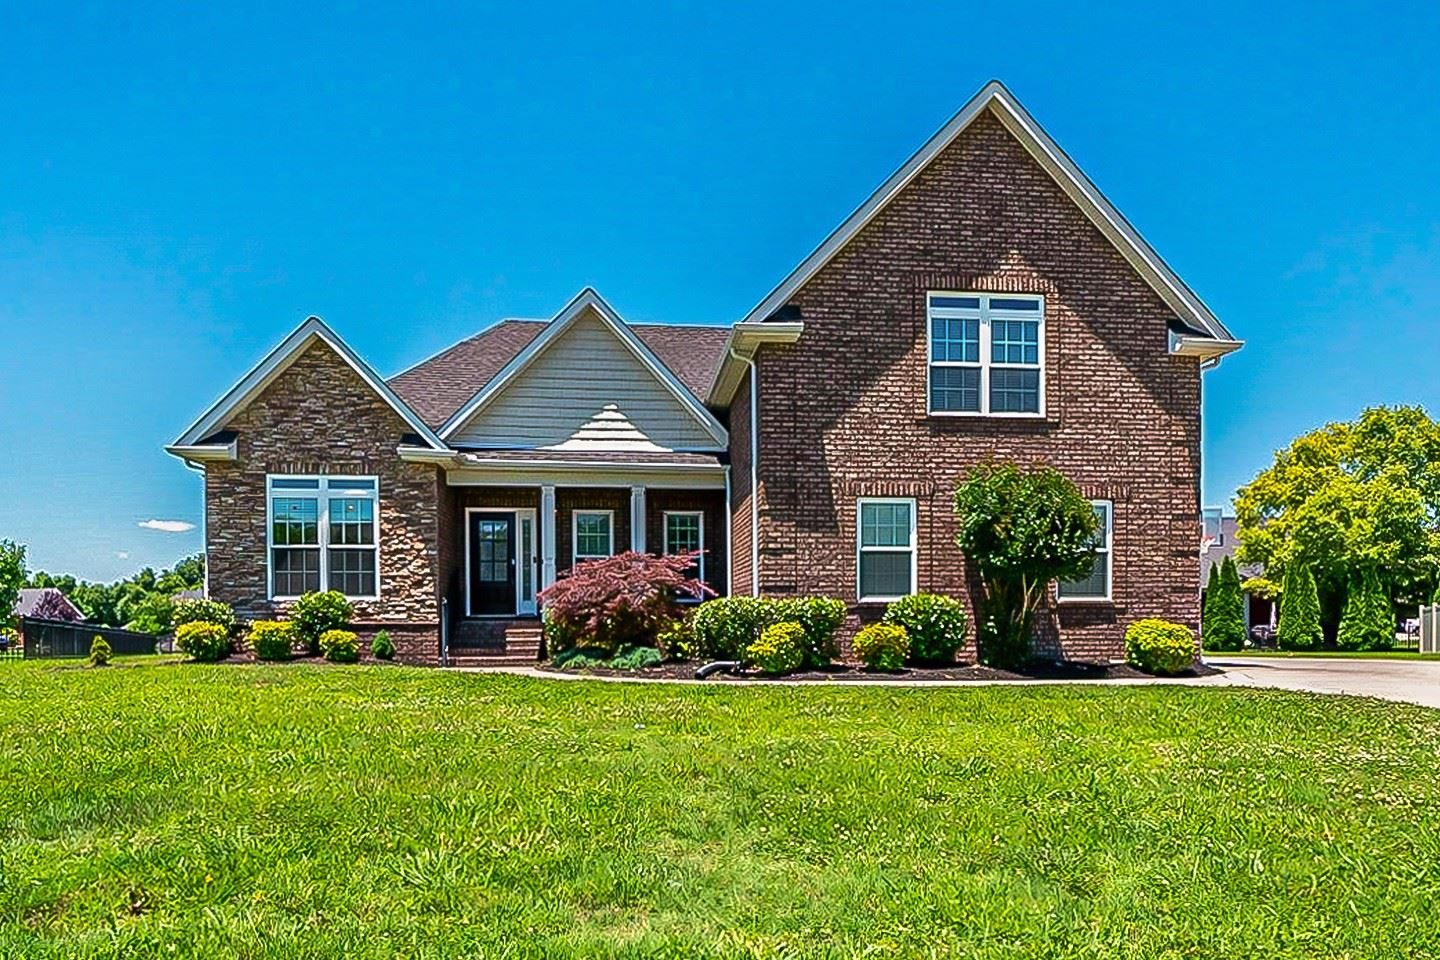 Photo of 1012 Crowell Dr, Christiana, TN 37037 (MLS # 2263545)